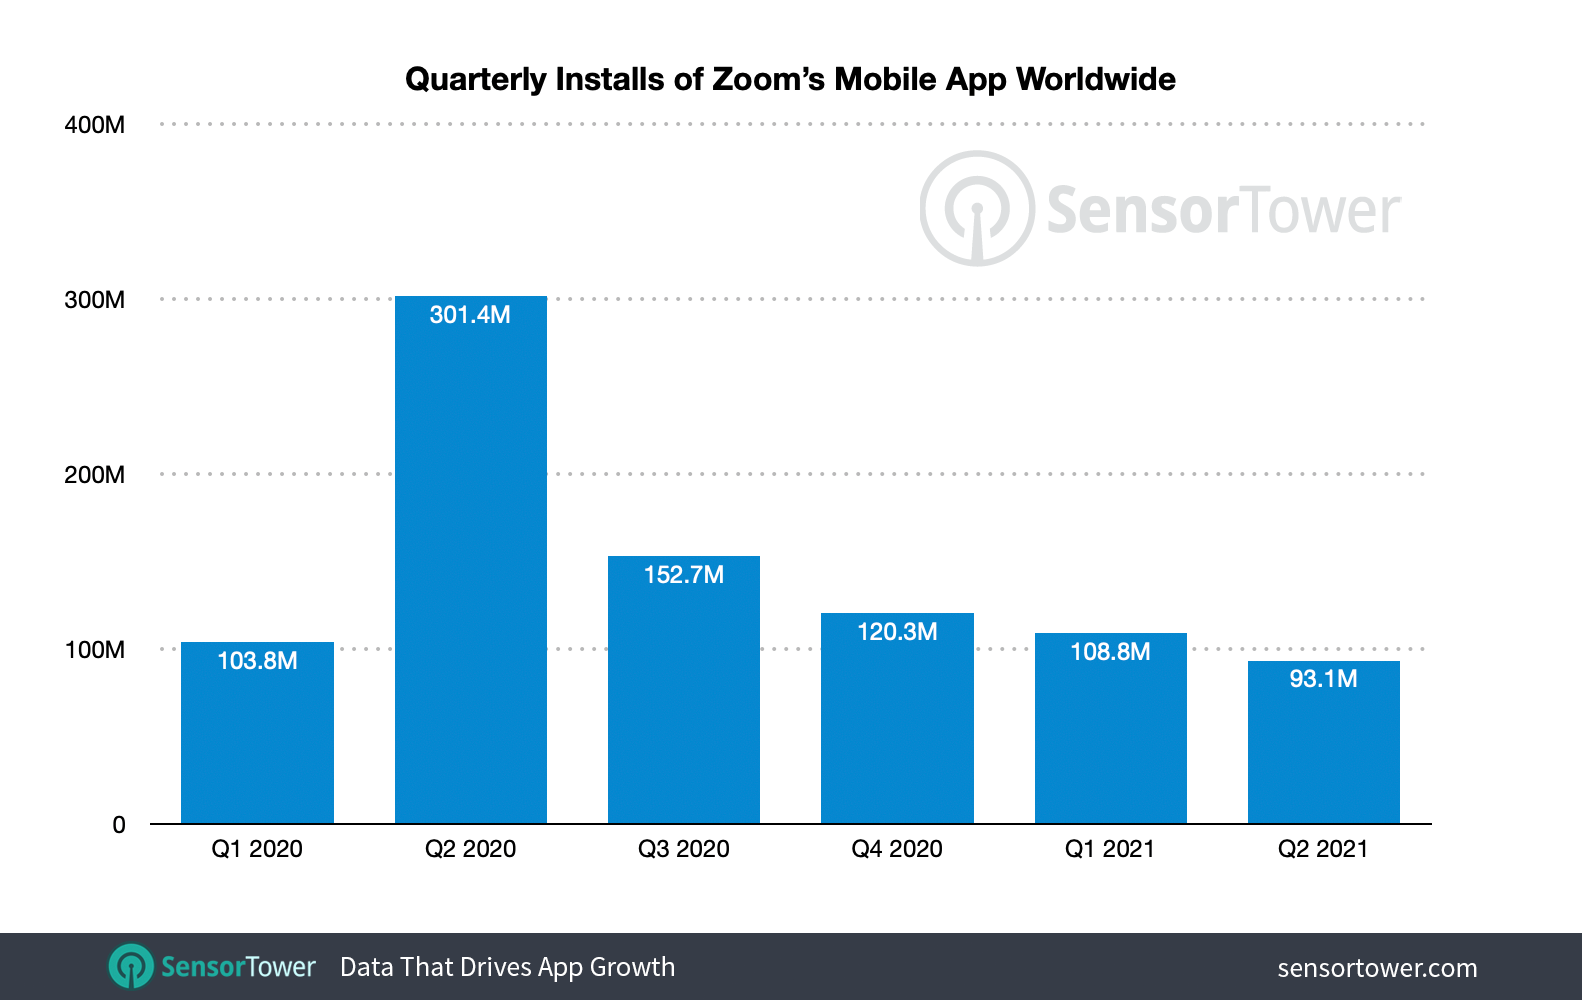 Zoom adoption rate soared in the second quarter of 2020, becoming the world's most downloaded app